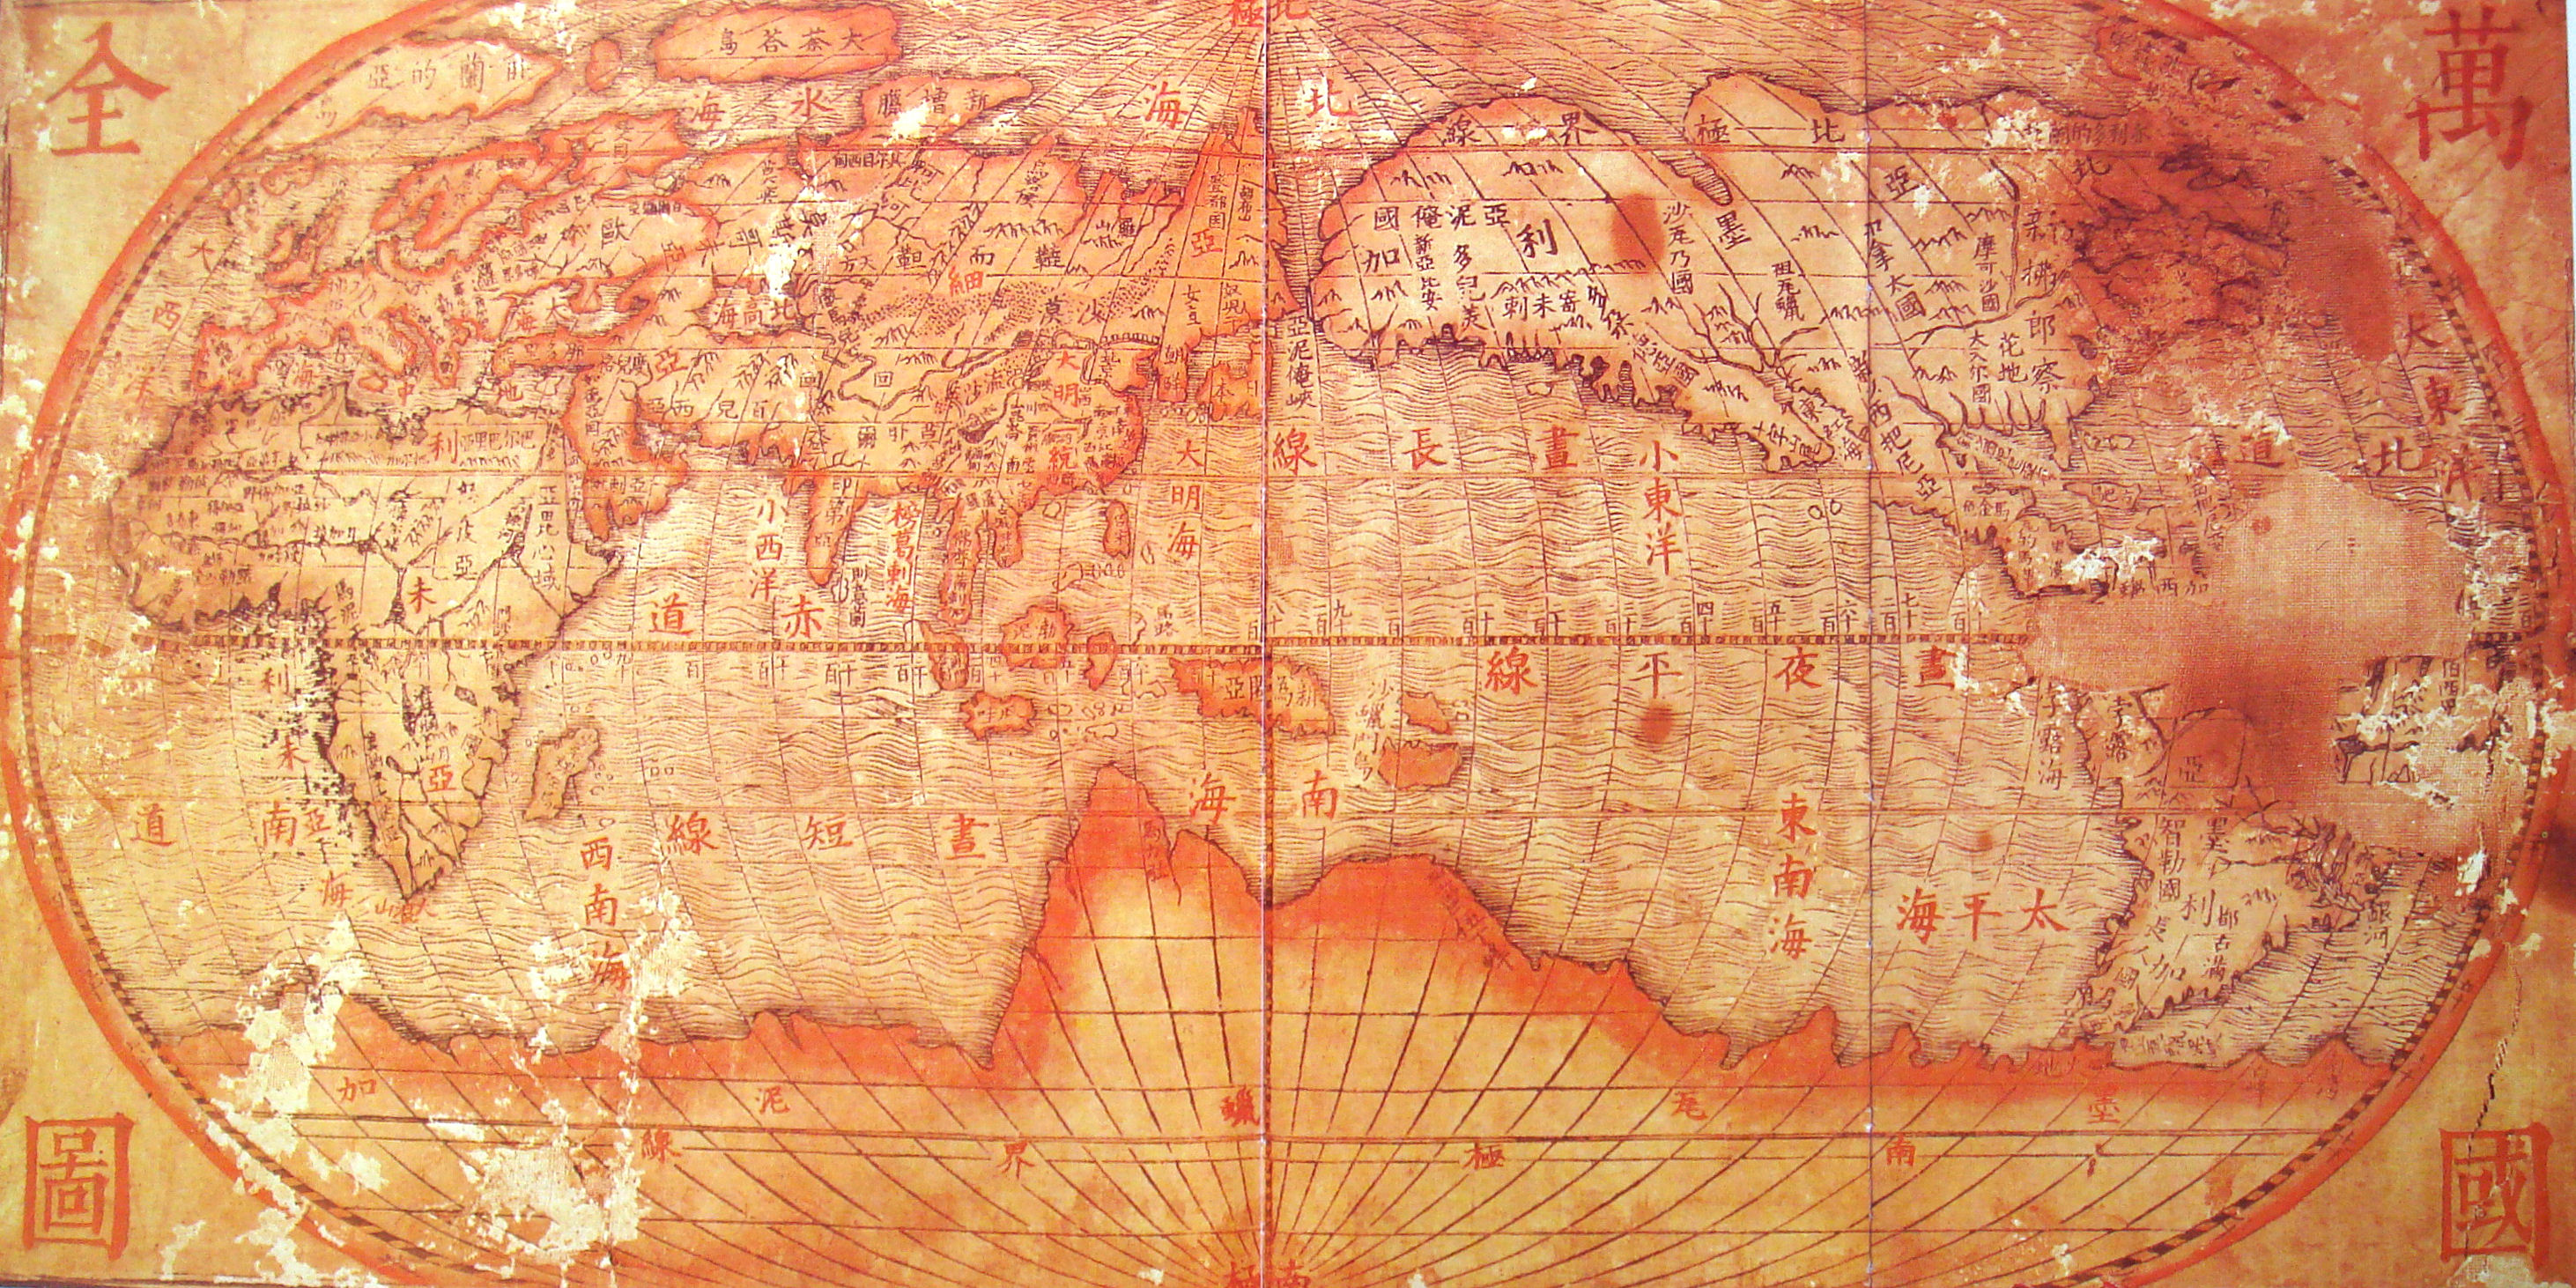 Pirate World Map.Res Obscura Early Chinese World Maps